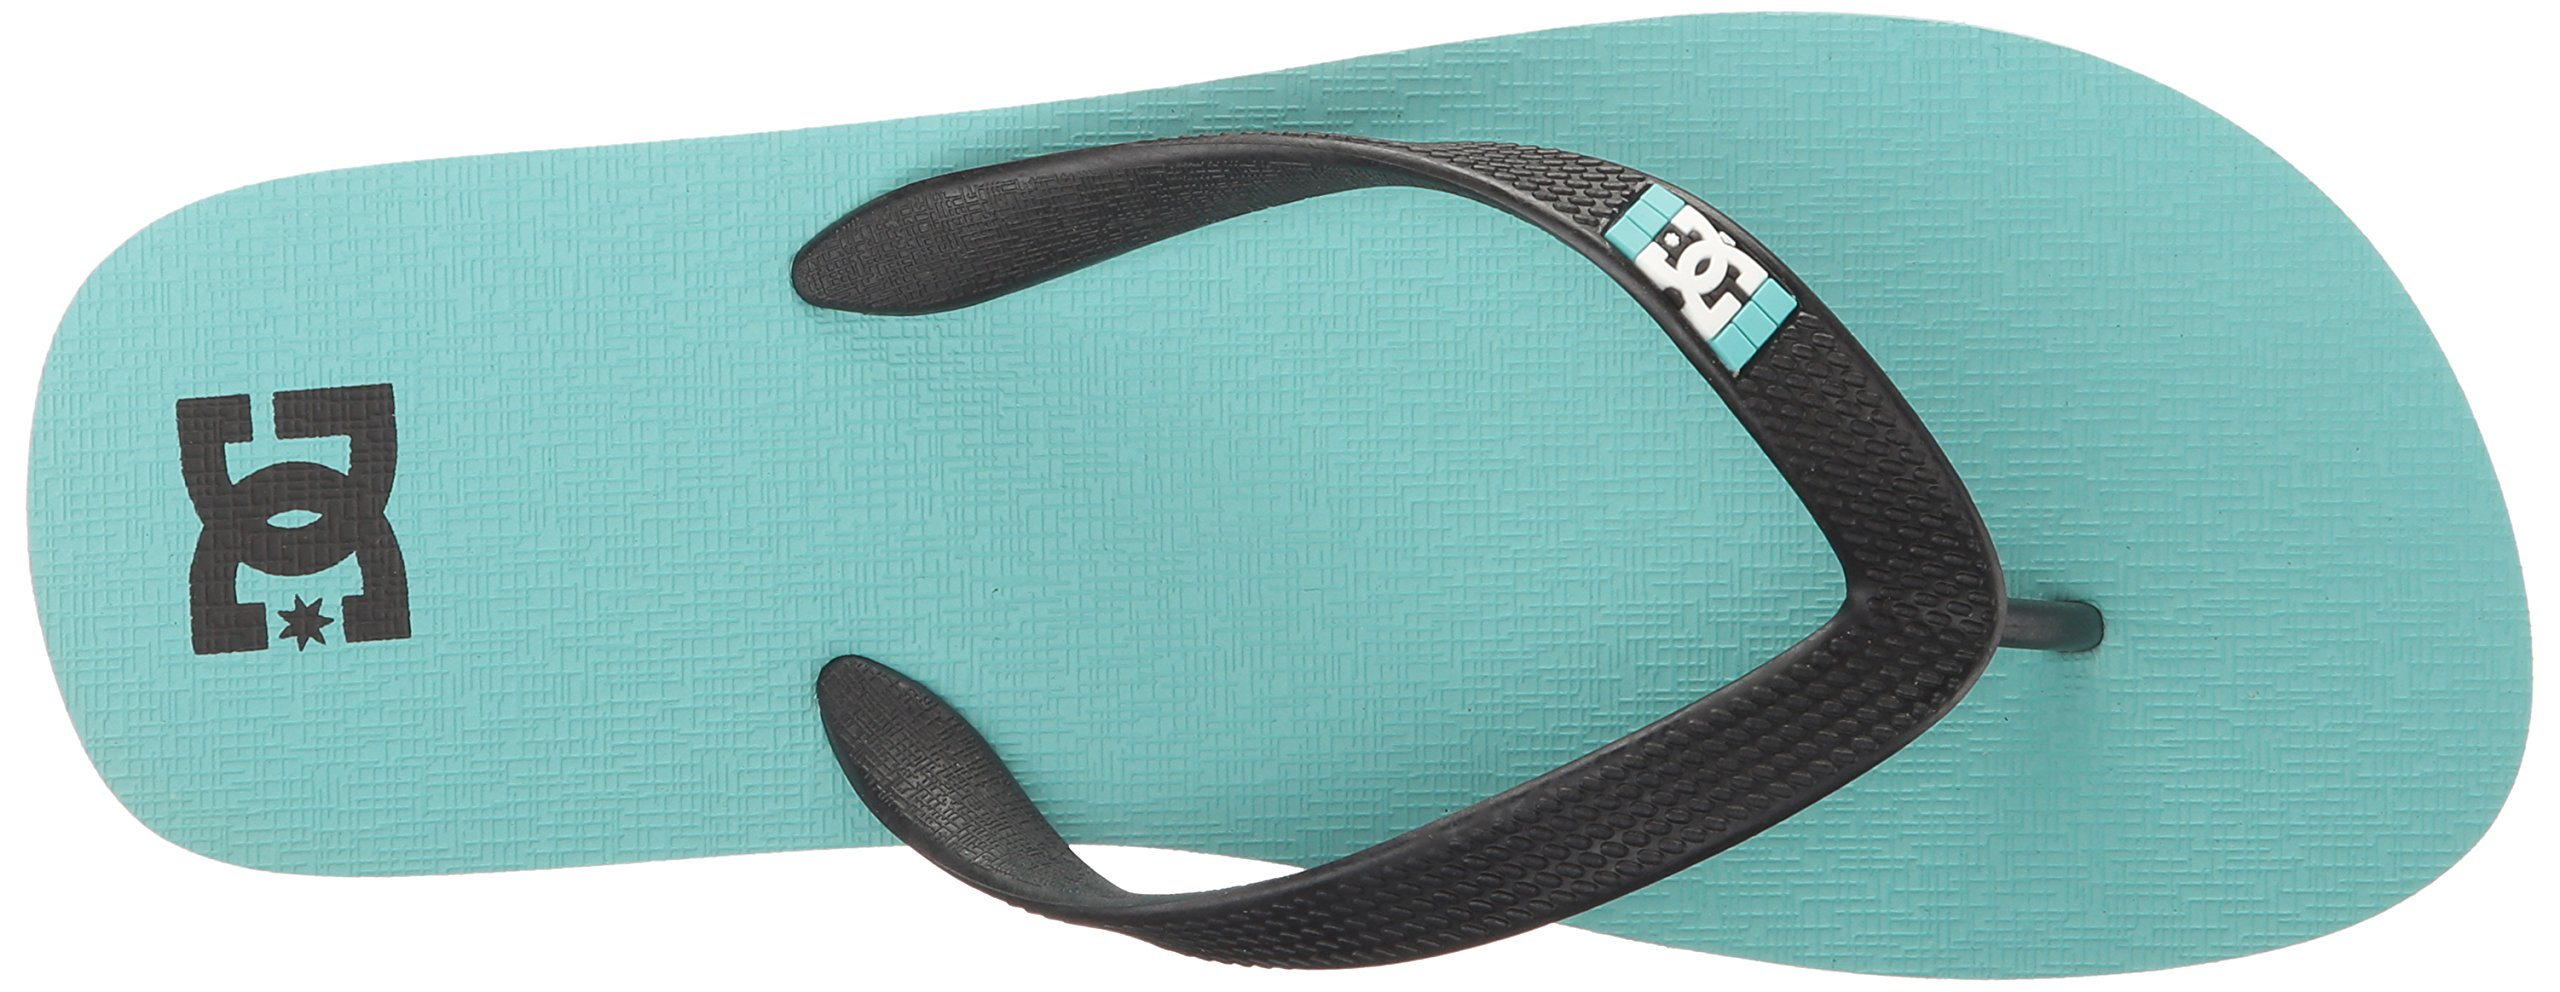 DC Girls' Spray Flip Flop, Turquoise, 6 M US Little Kid by DC (Image #8)